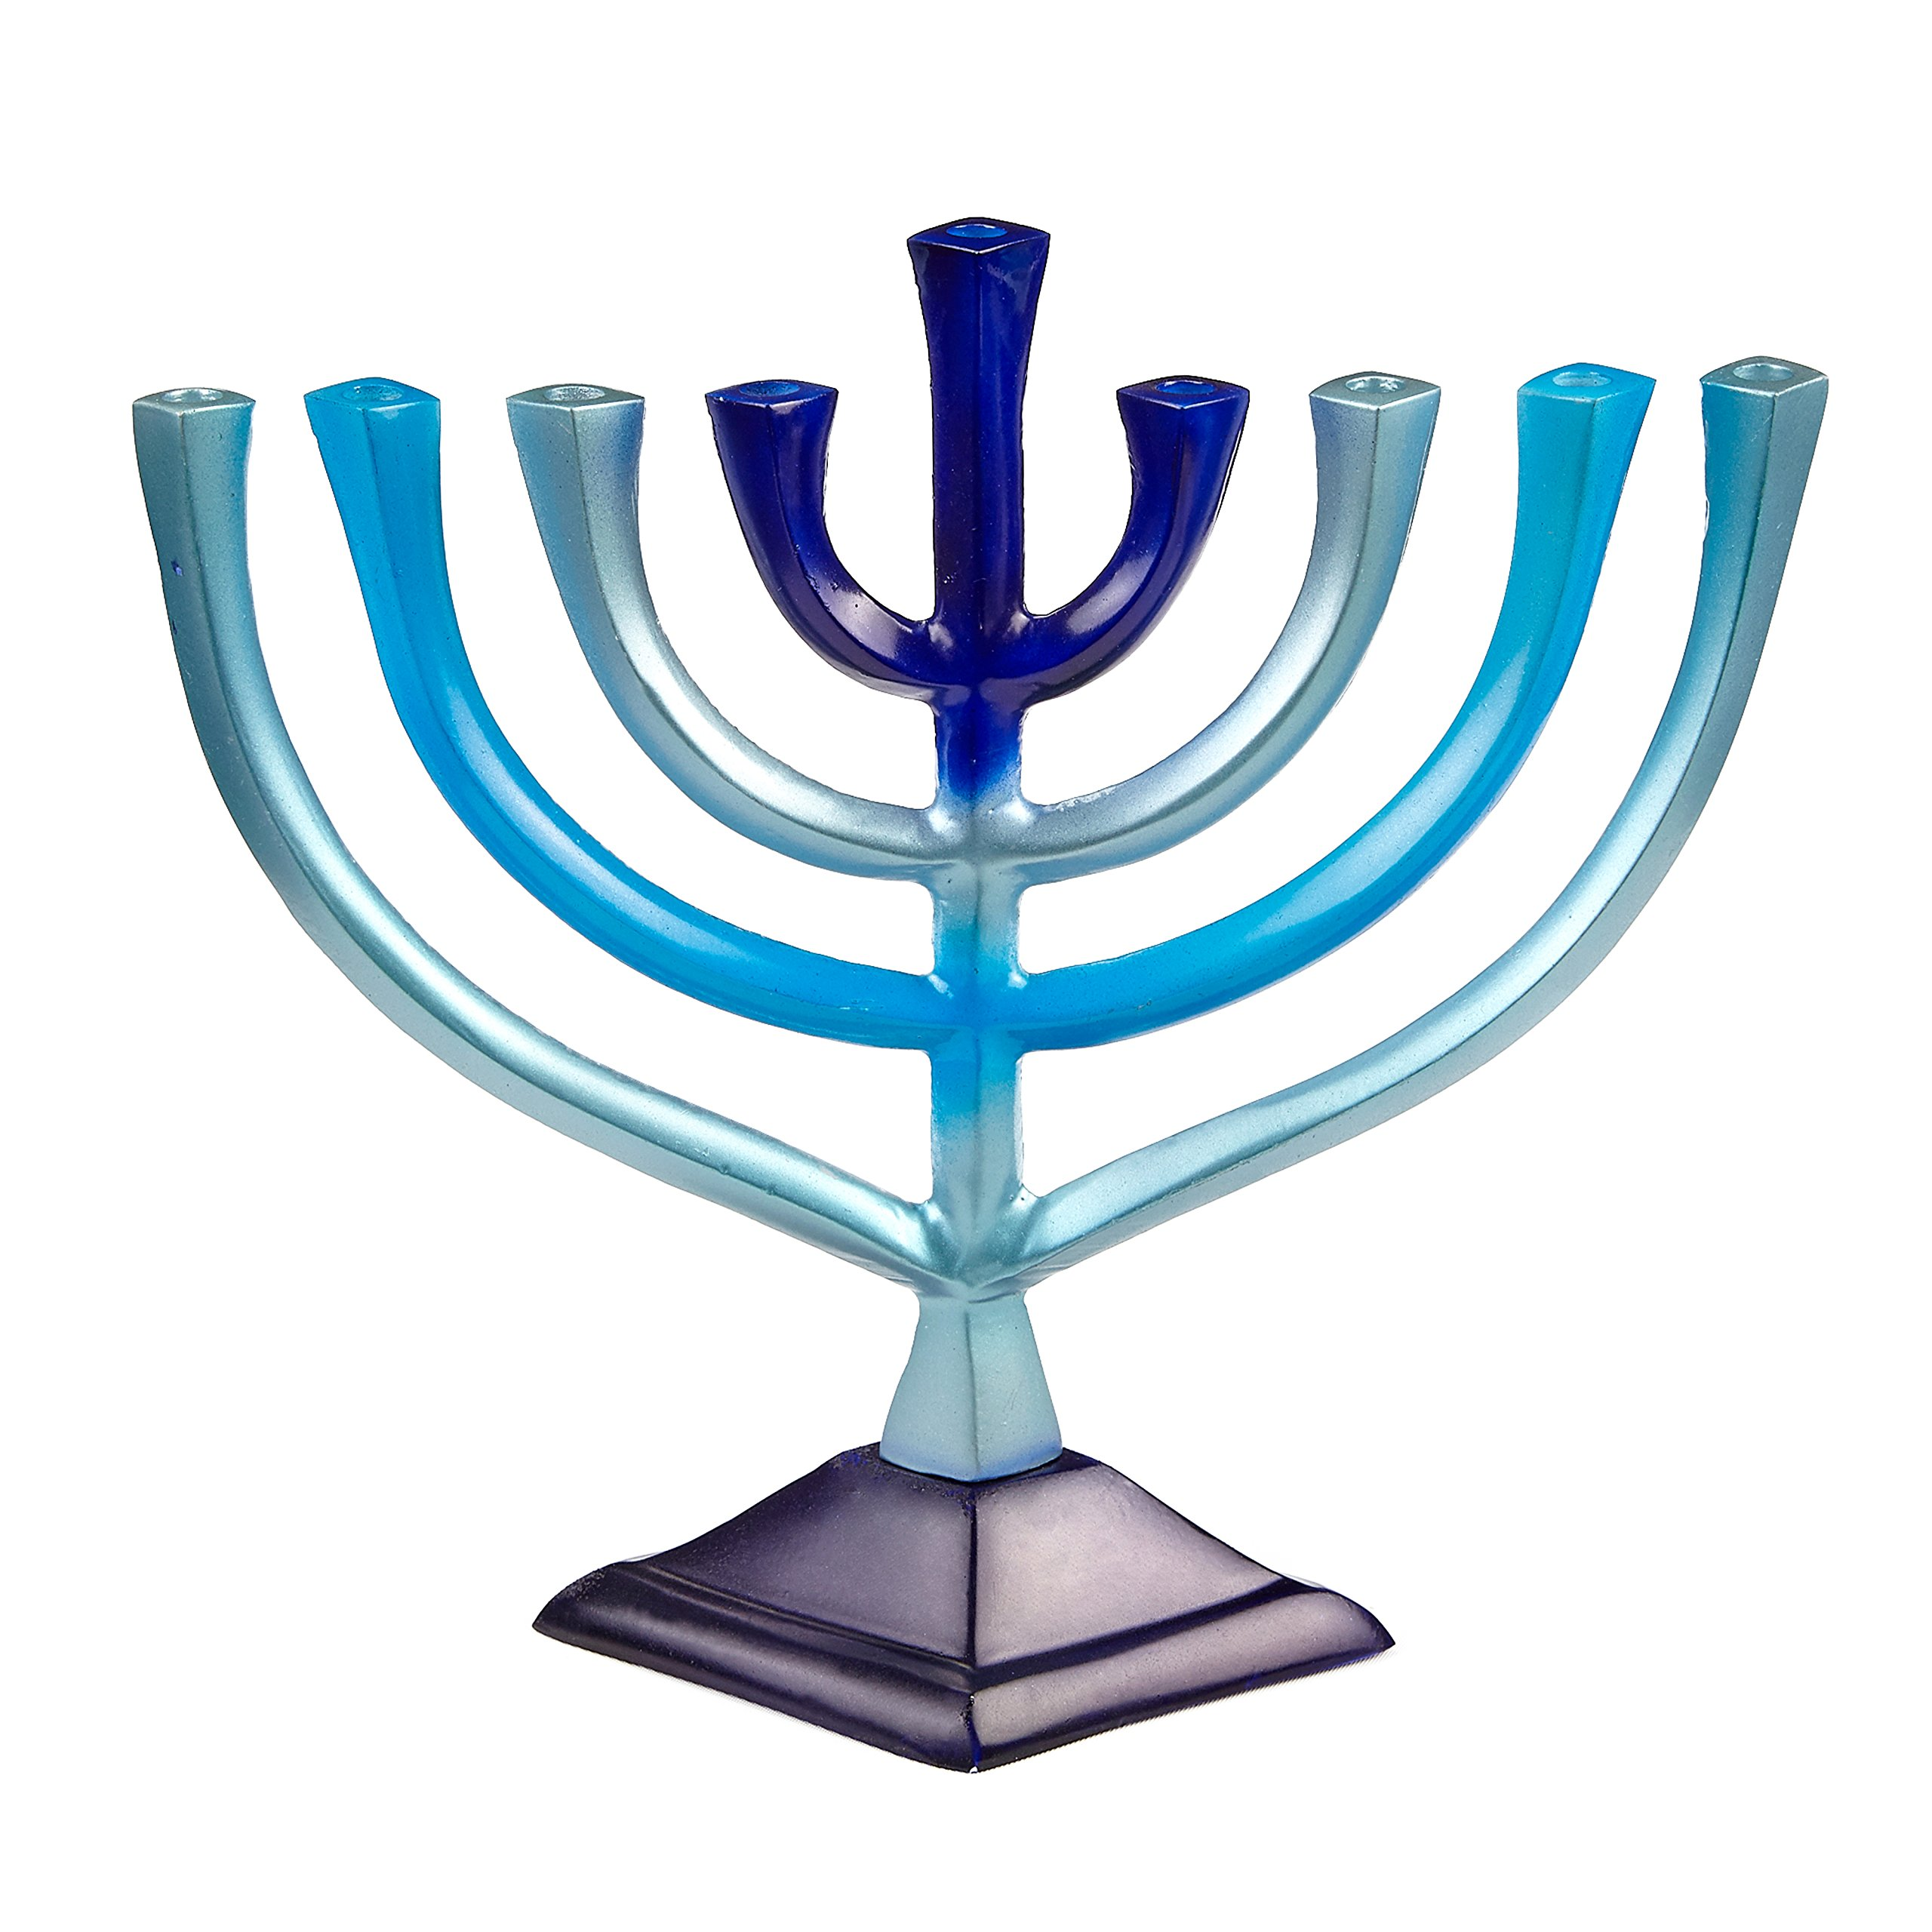 Ner Mitzvah Colorful Aluminum Candle Menorah - Fits All Standard Chanukah Candles - Artistic Blue Gradient Tie Dye Design - 10'' High